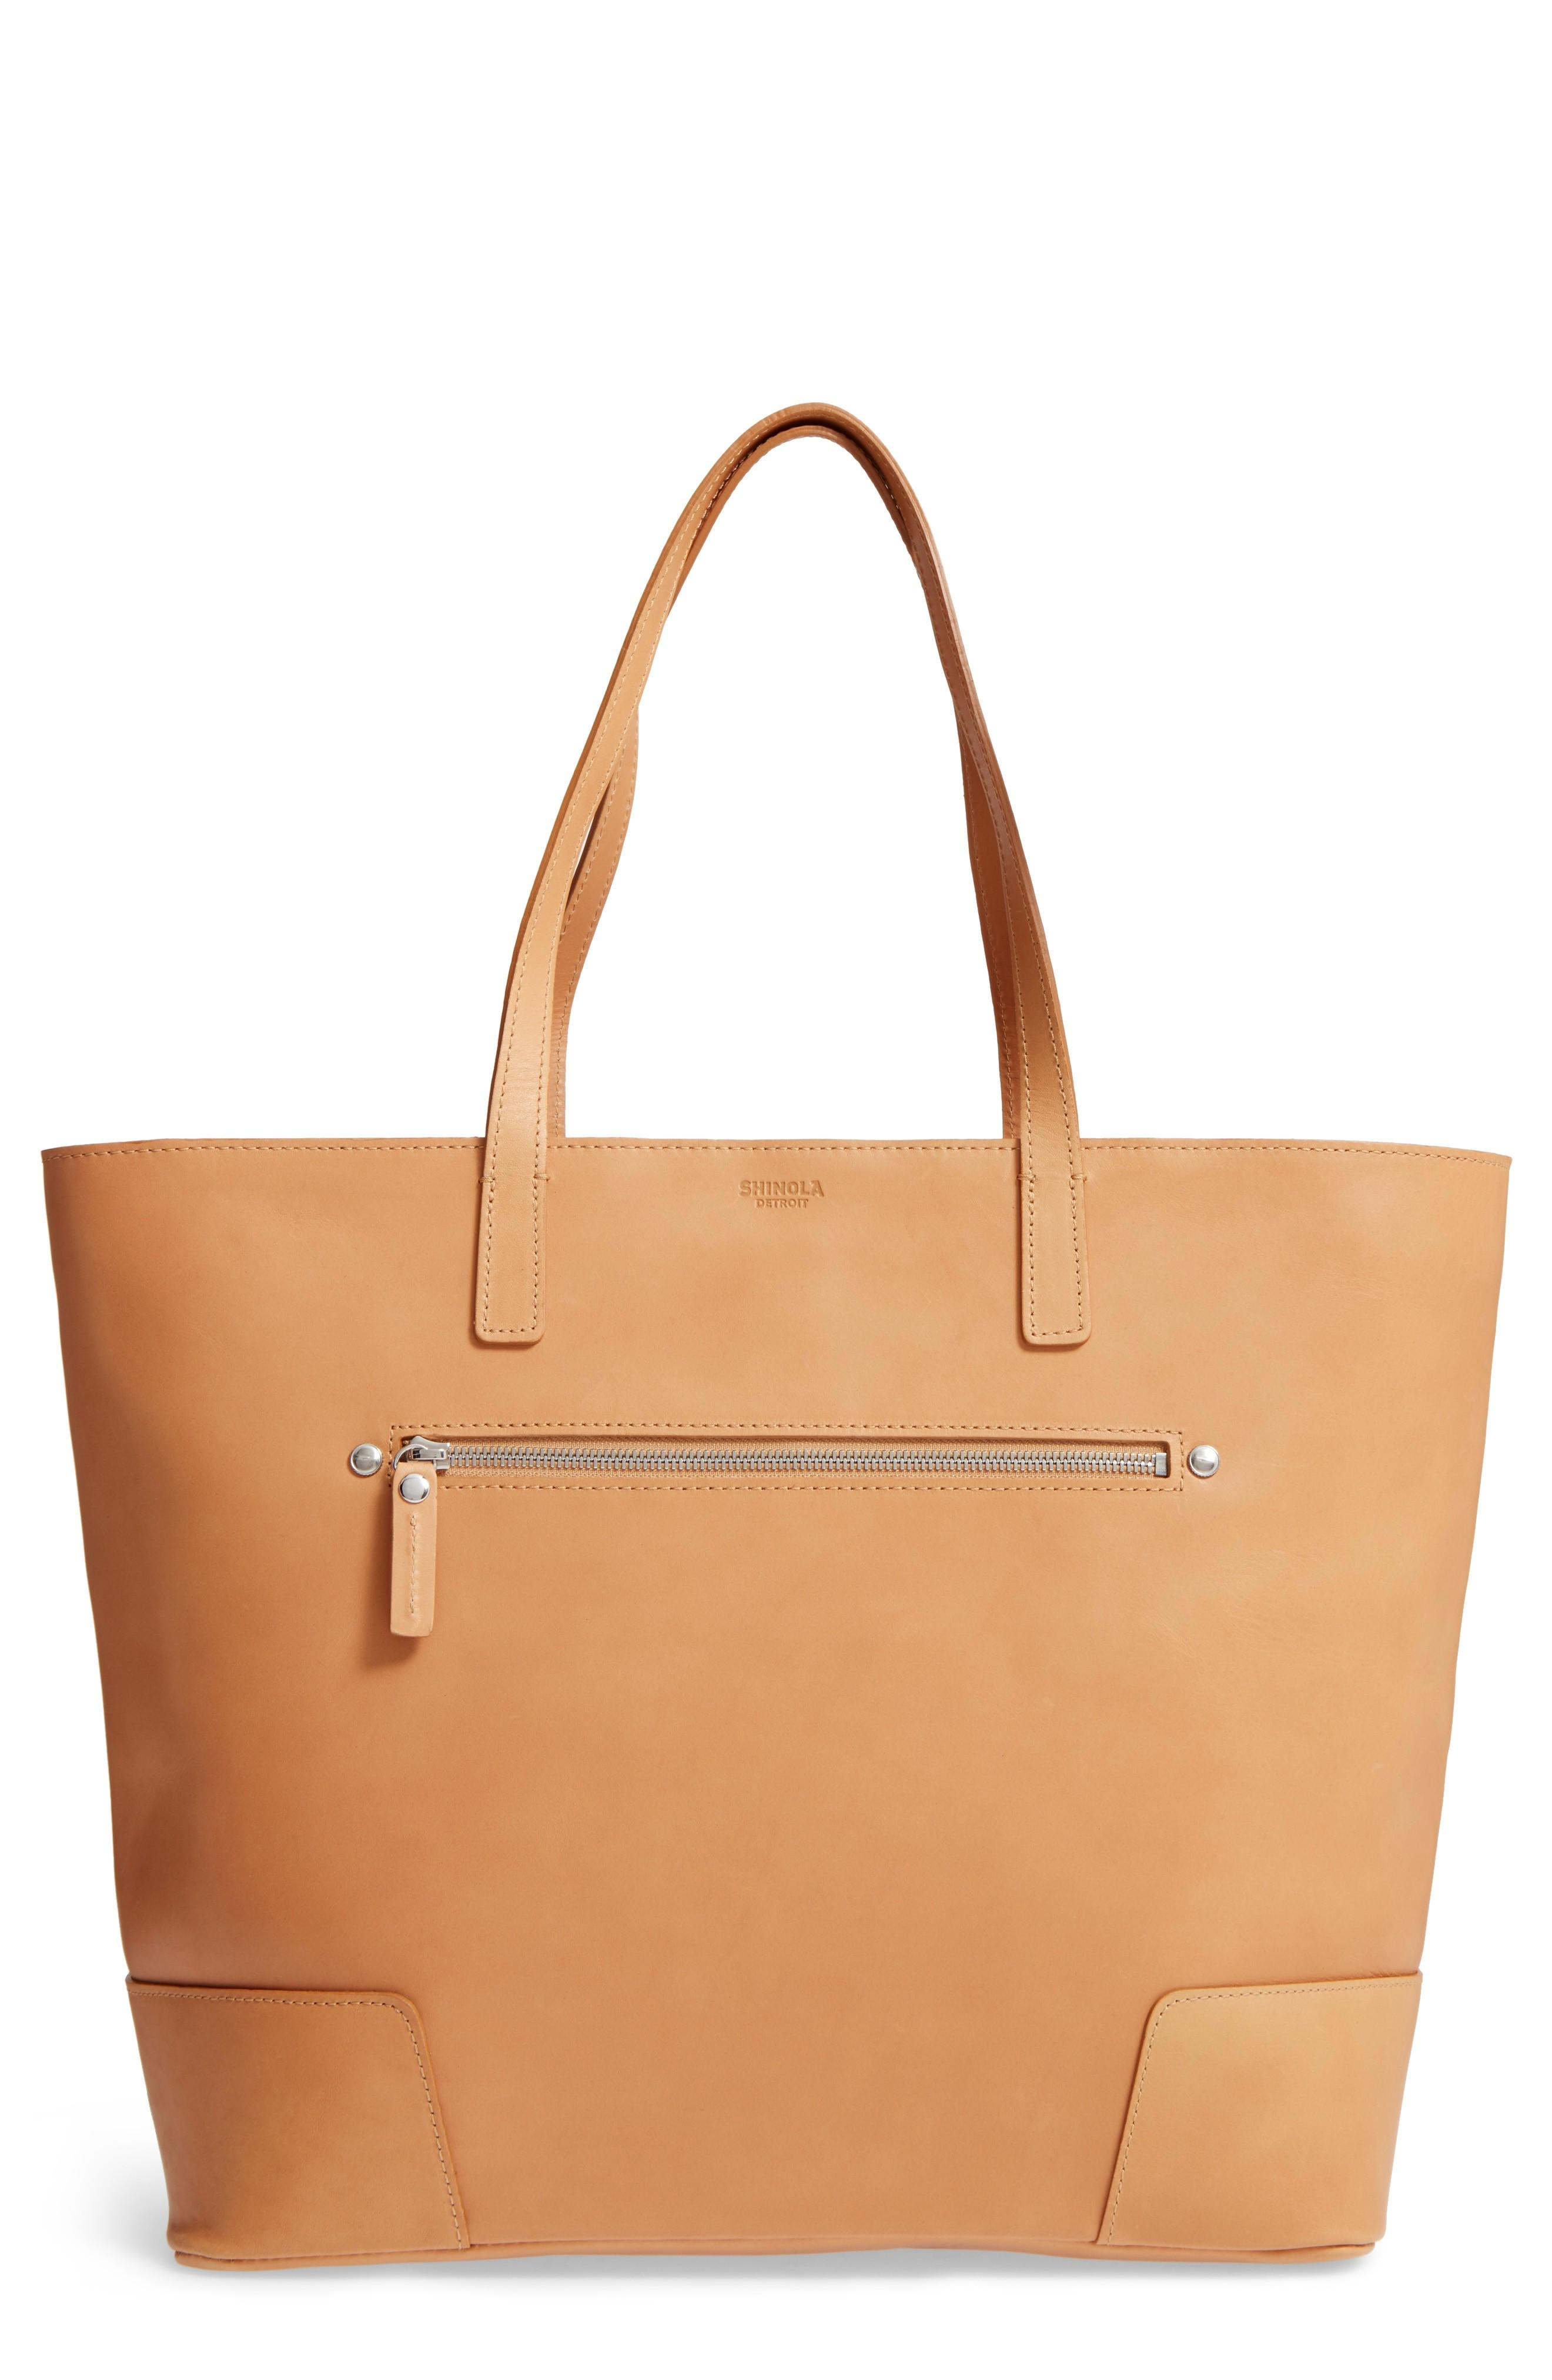 Shinola Leather Tote - Brown In Camel